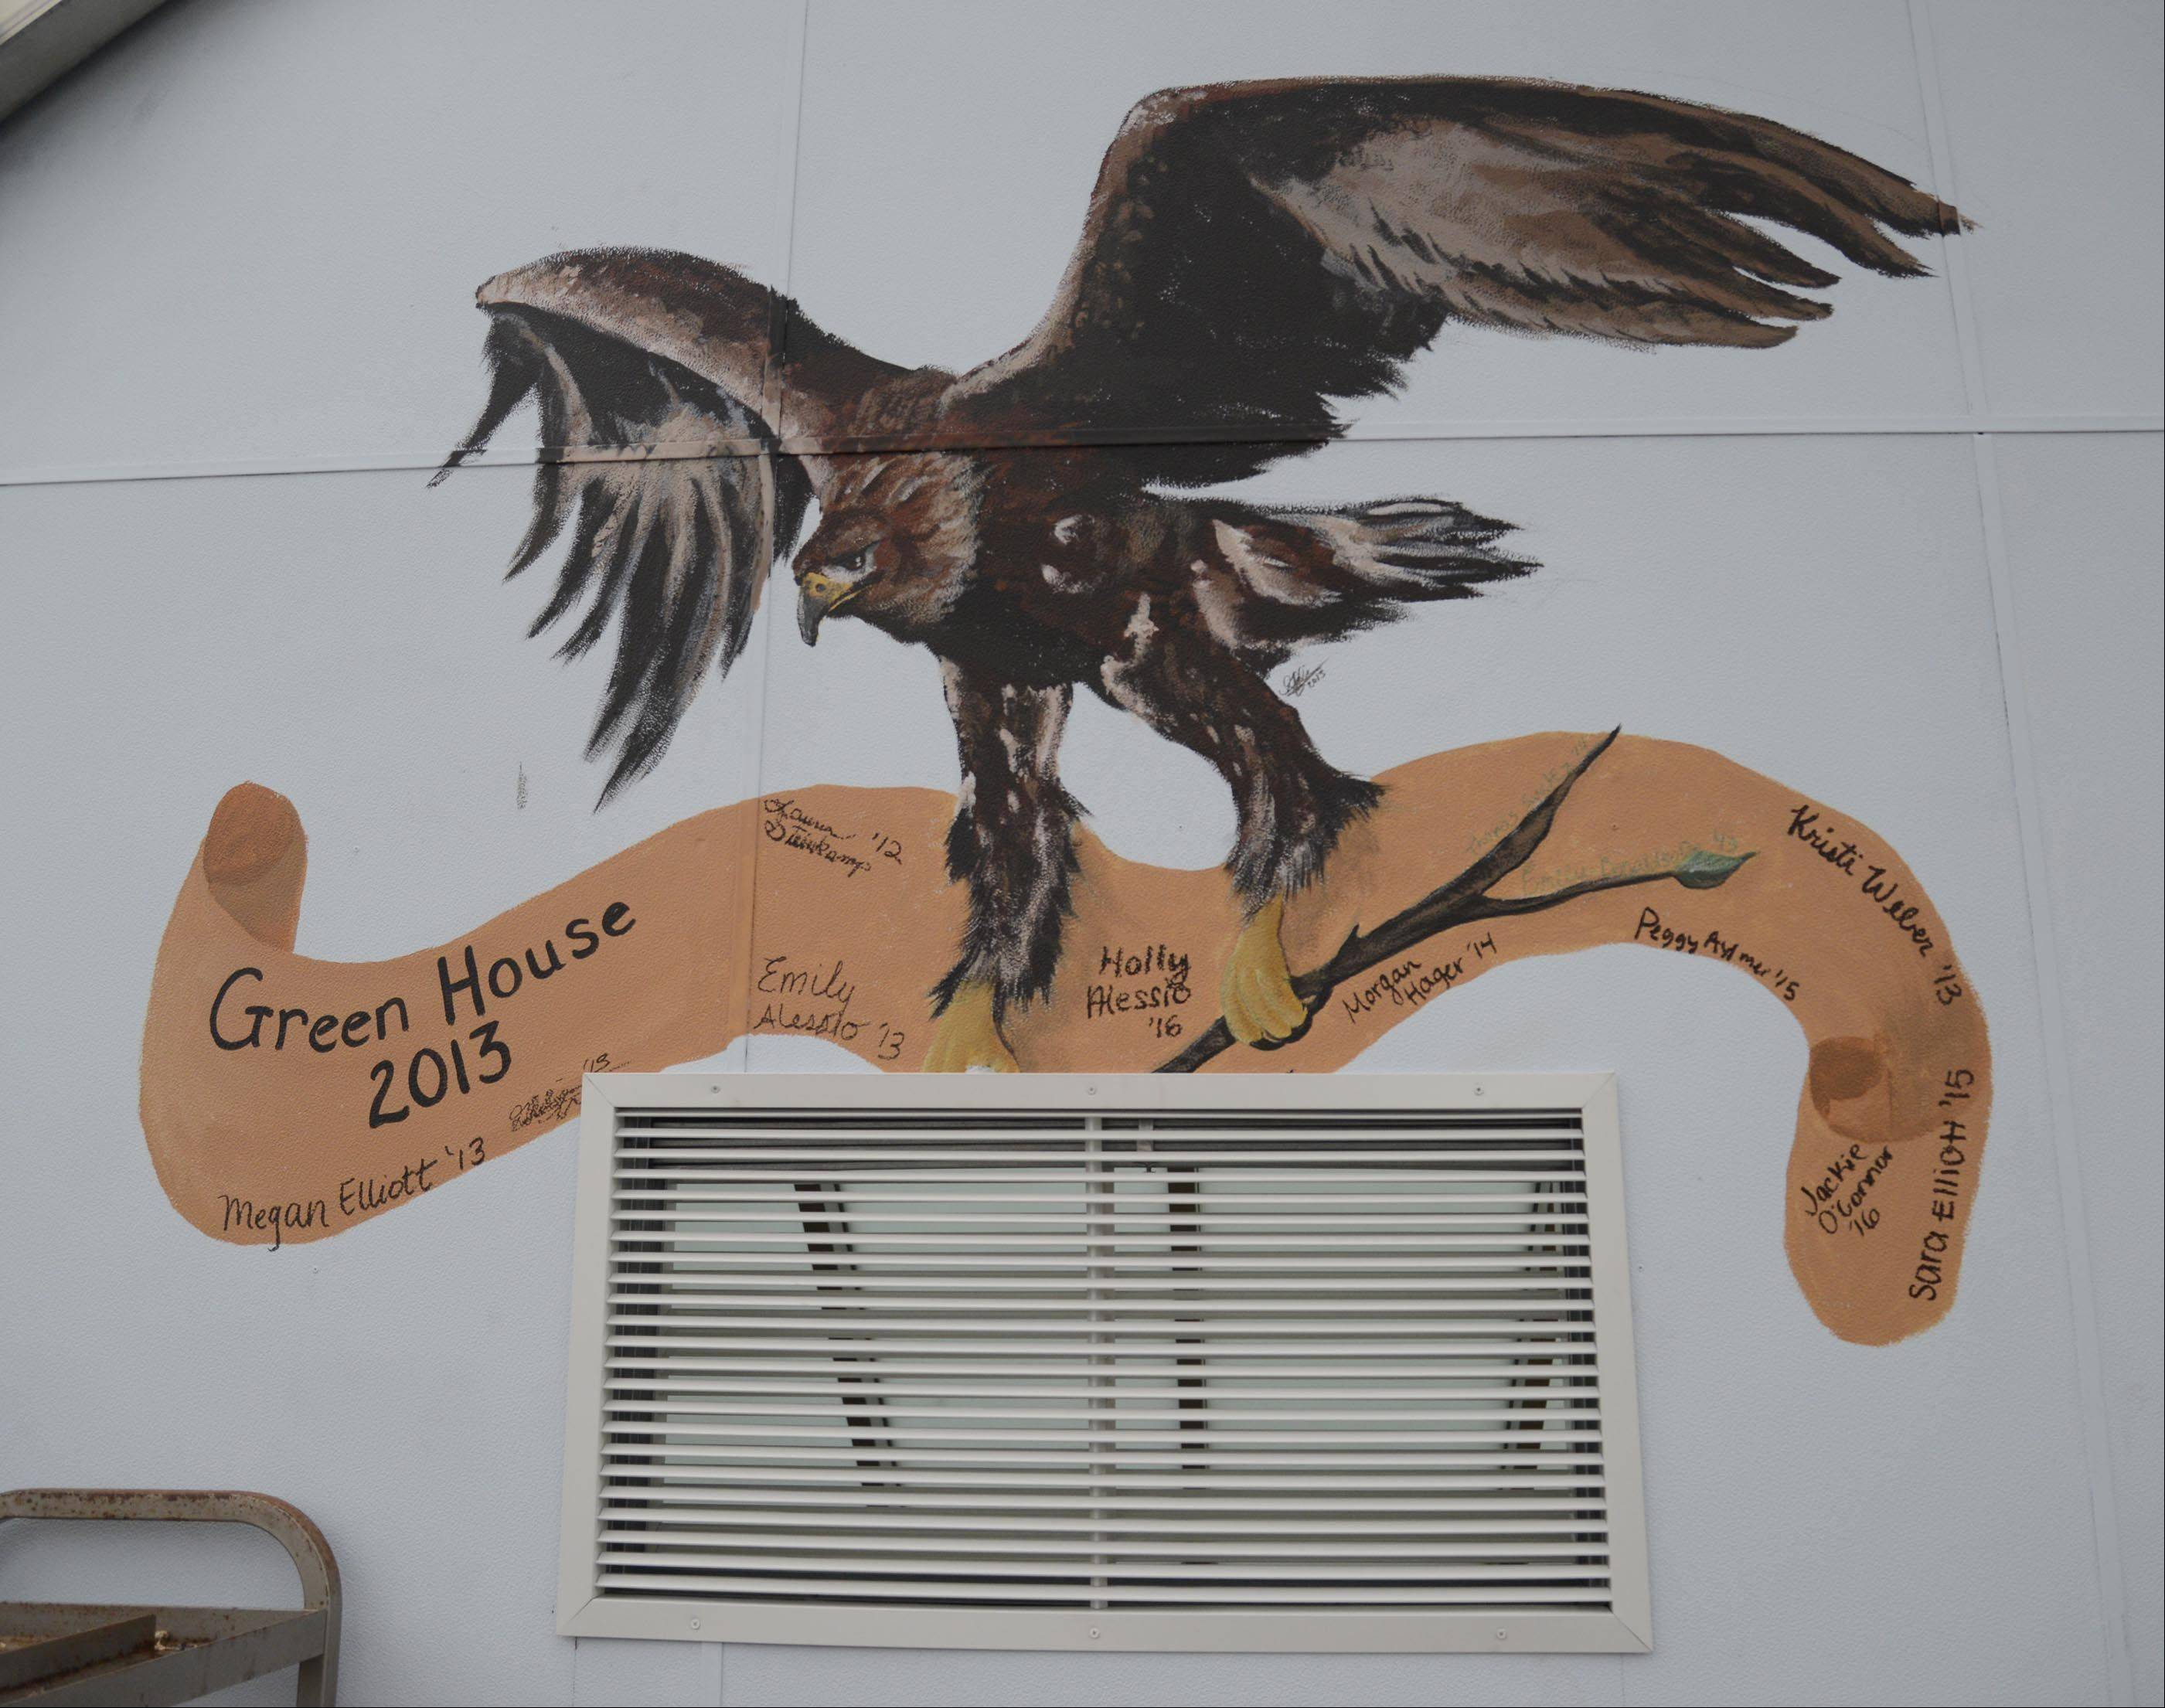 Gabi Navarro, a Jacobs High School student who graduated in the spring, painted this mural inside the greenhouse that was previously used for storage. Navarro was part of the school's Green Eagles environmental club, which took on the greenhouse's renovation in the spring.